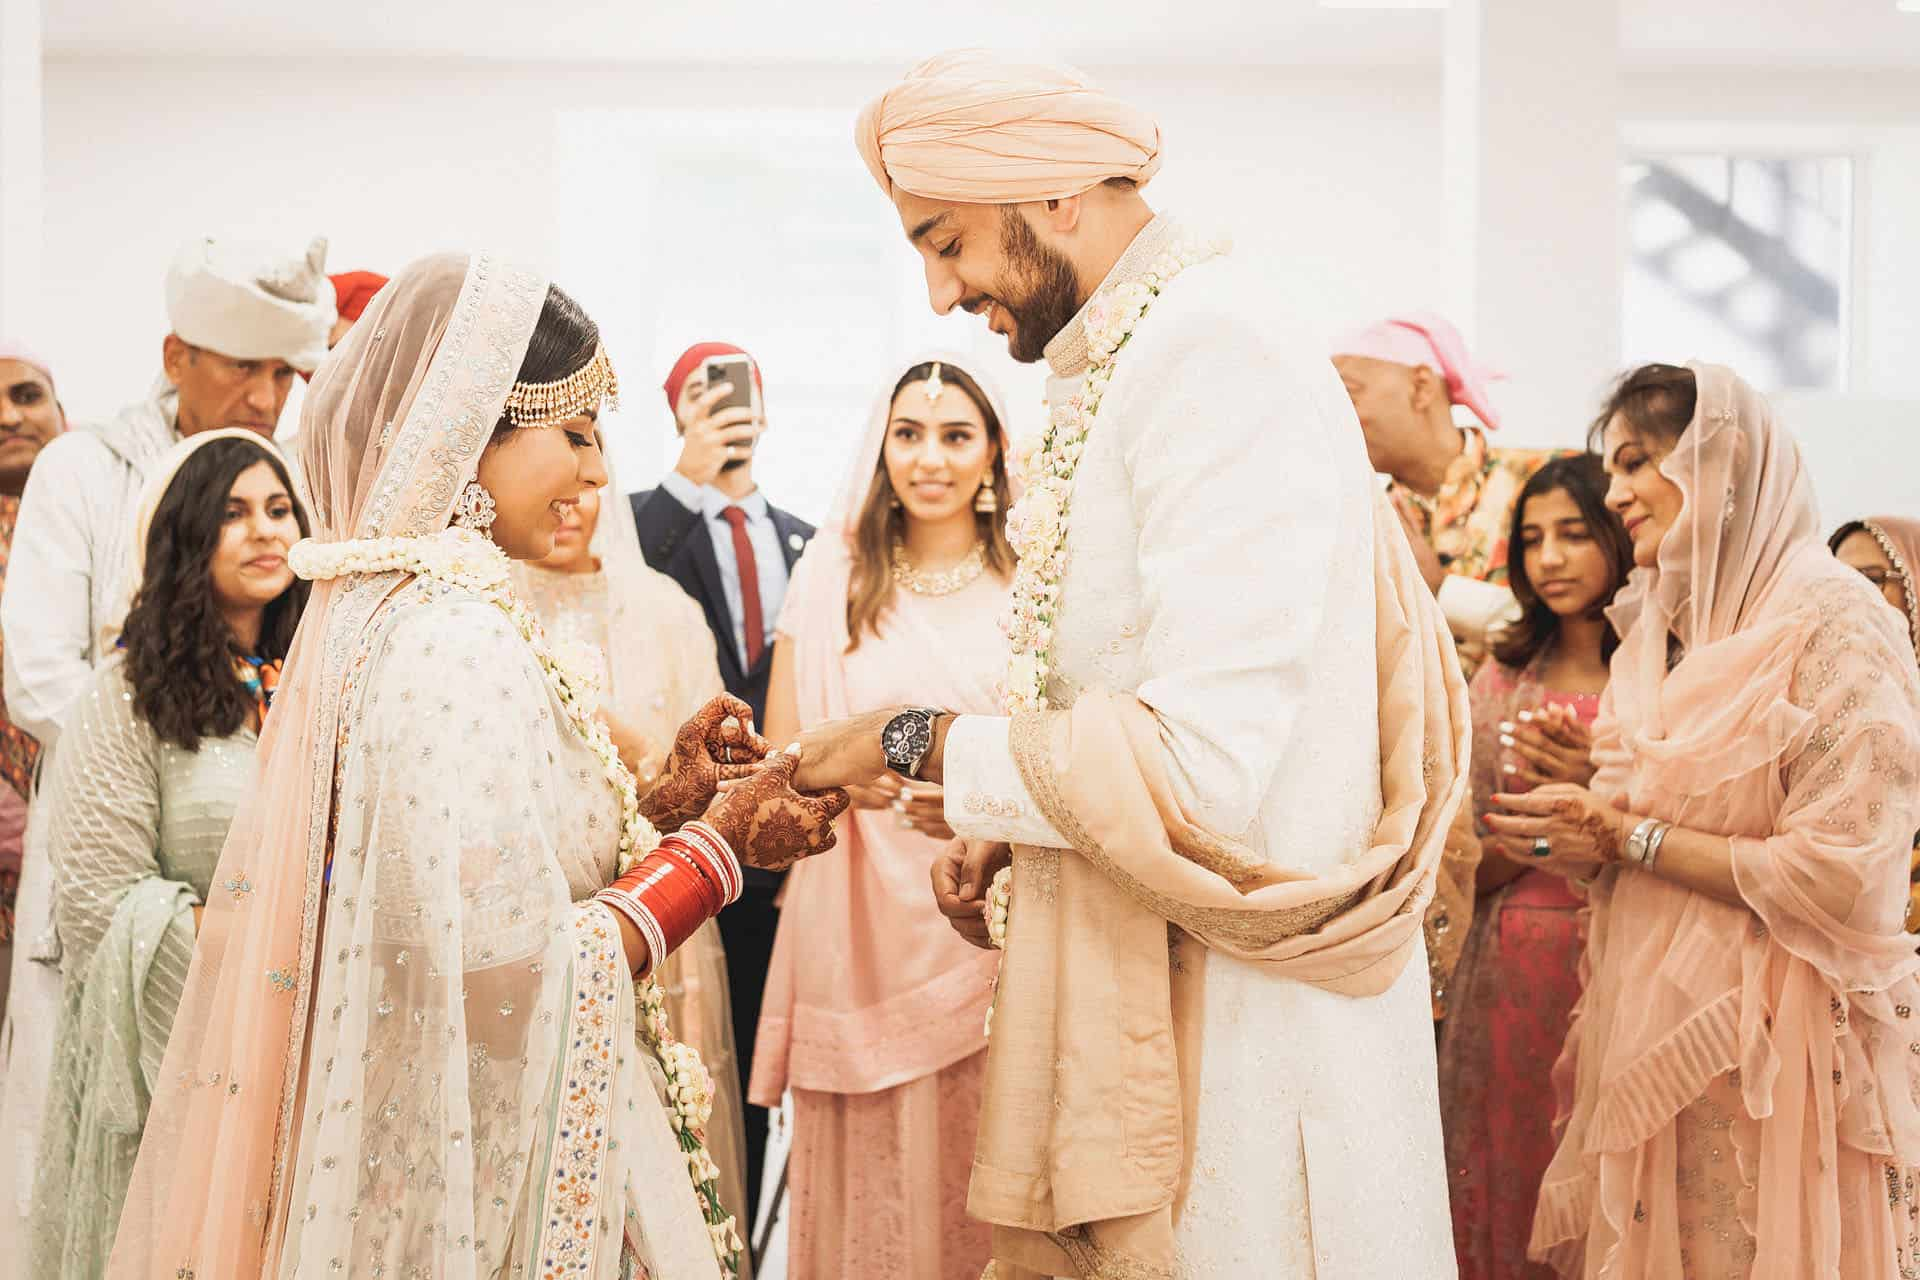 central gurdwara intimate sikh wedding photos